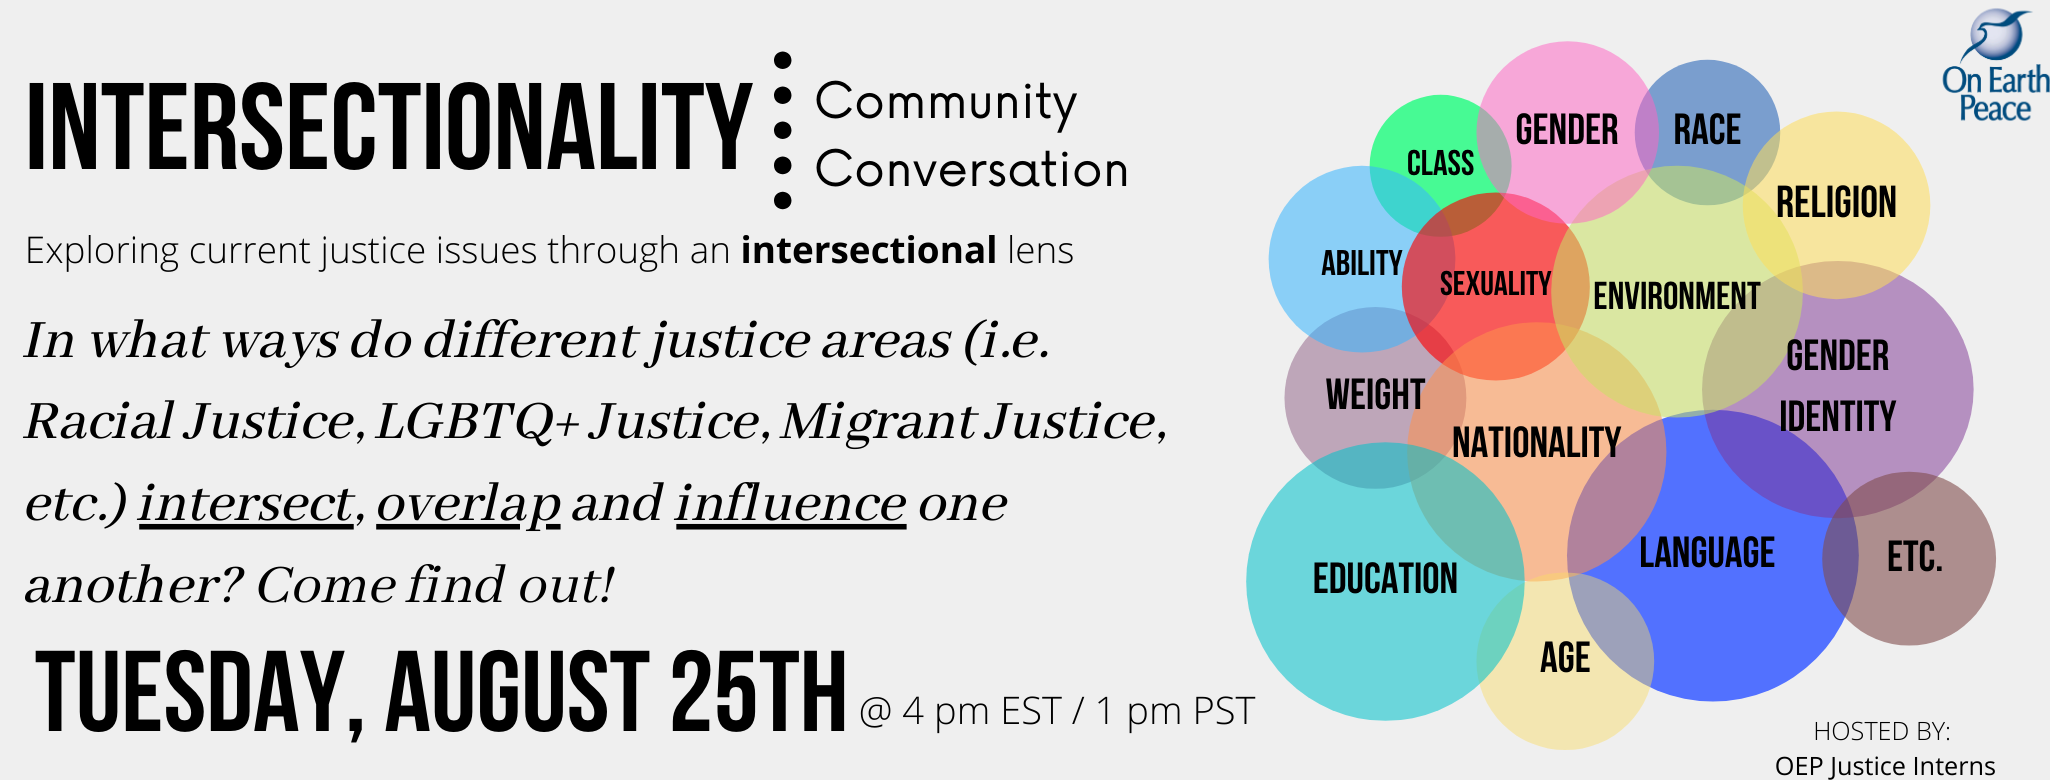 Intersectionality Community Conversation